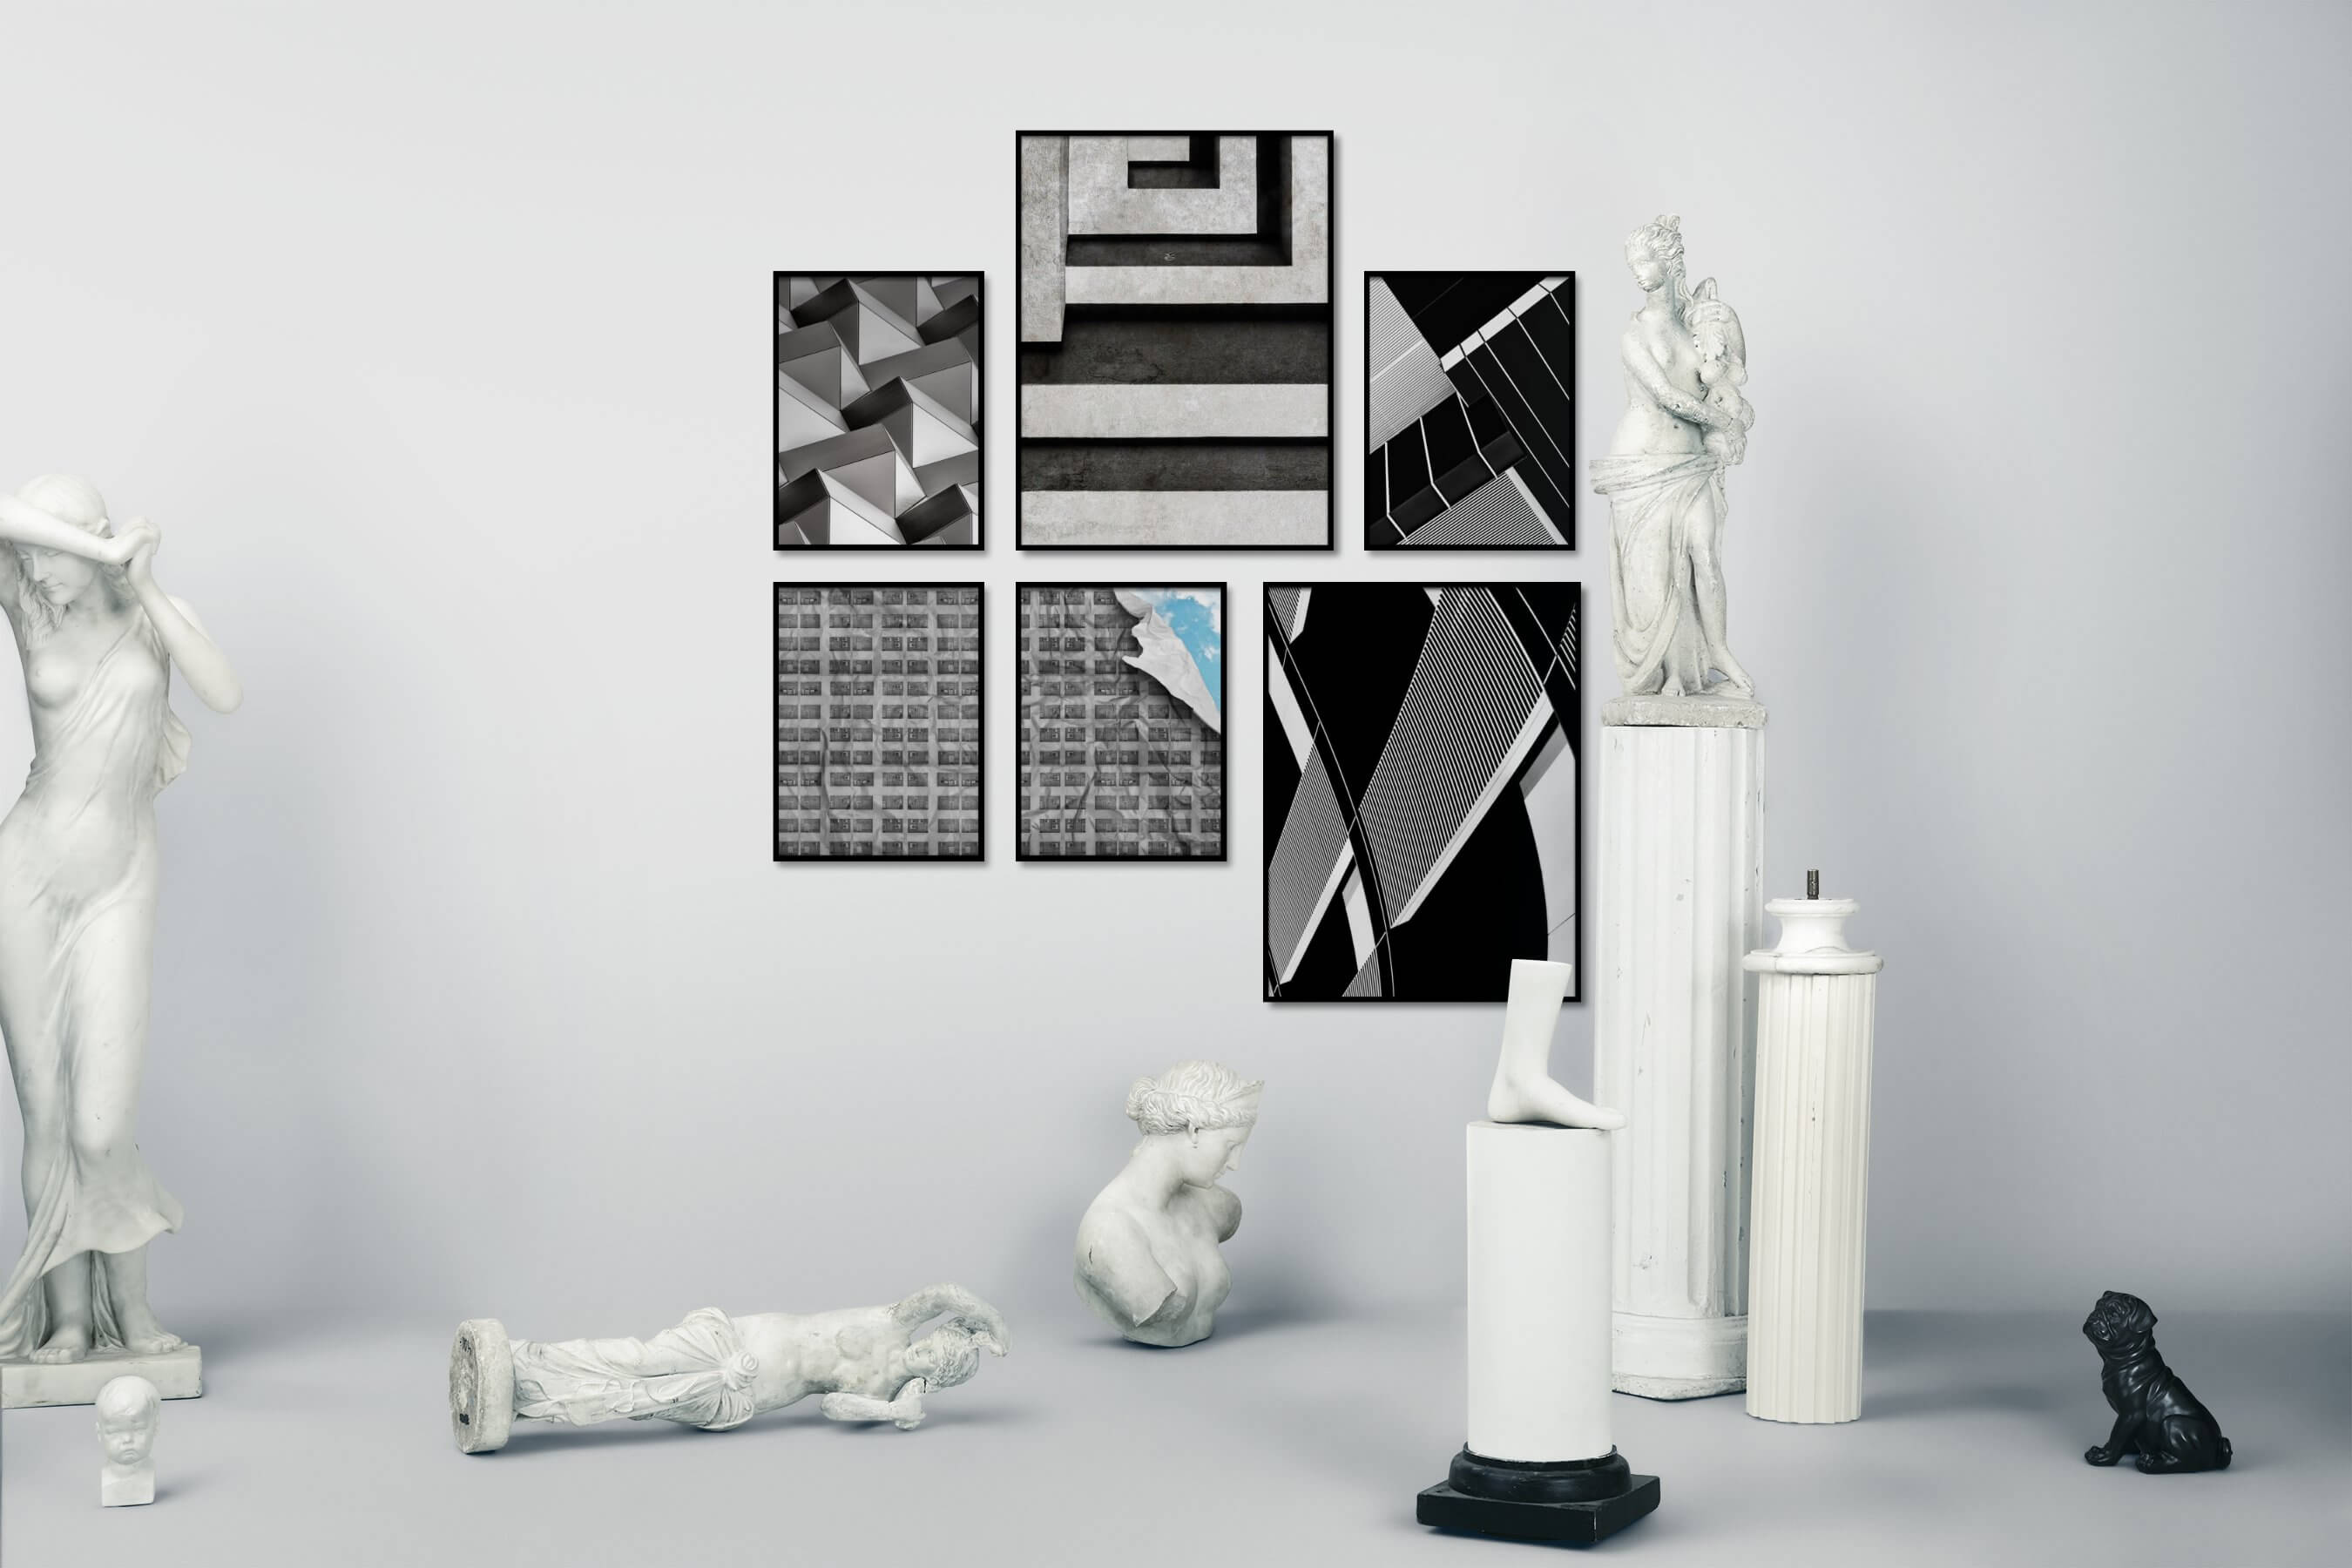 Gallery wall idea with six framed pictures arranged on a wall depicting Black & White, For the Maximalist, For the Moderate, City Life, and Artsy